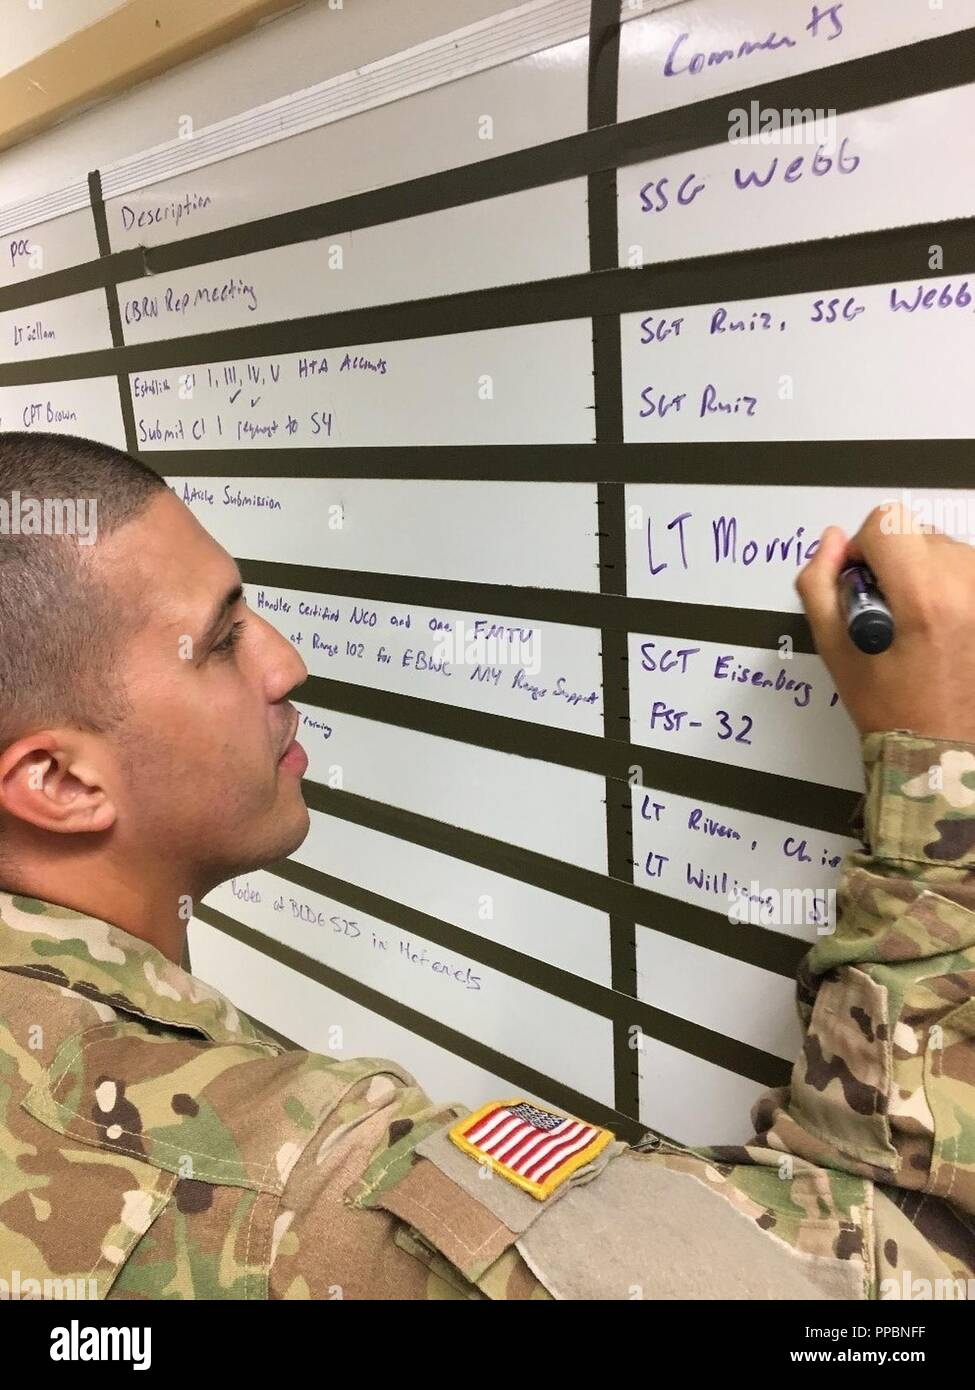 Sgt Vincent Torres Training Room Non Commissioned Officer Phoenix Troop Field Artillery Squadron 2d Cavalry Regiment Updates The Task Tracker In